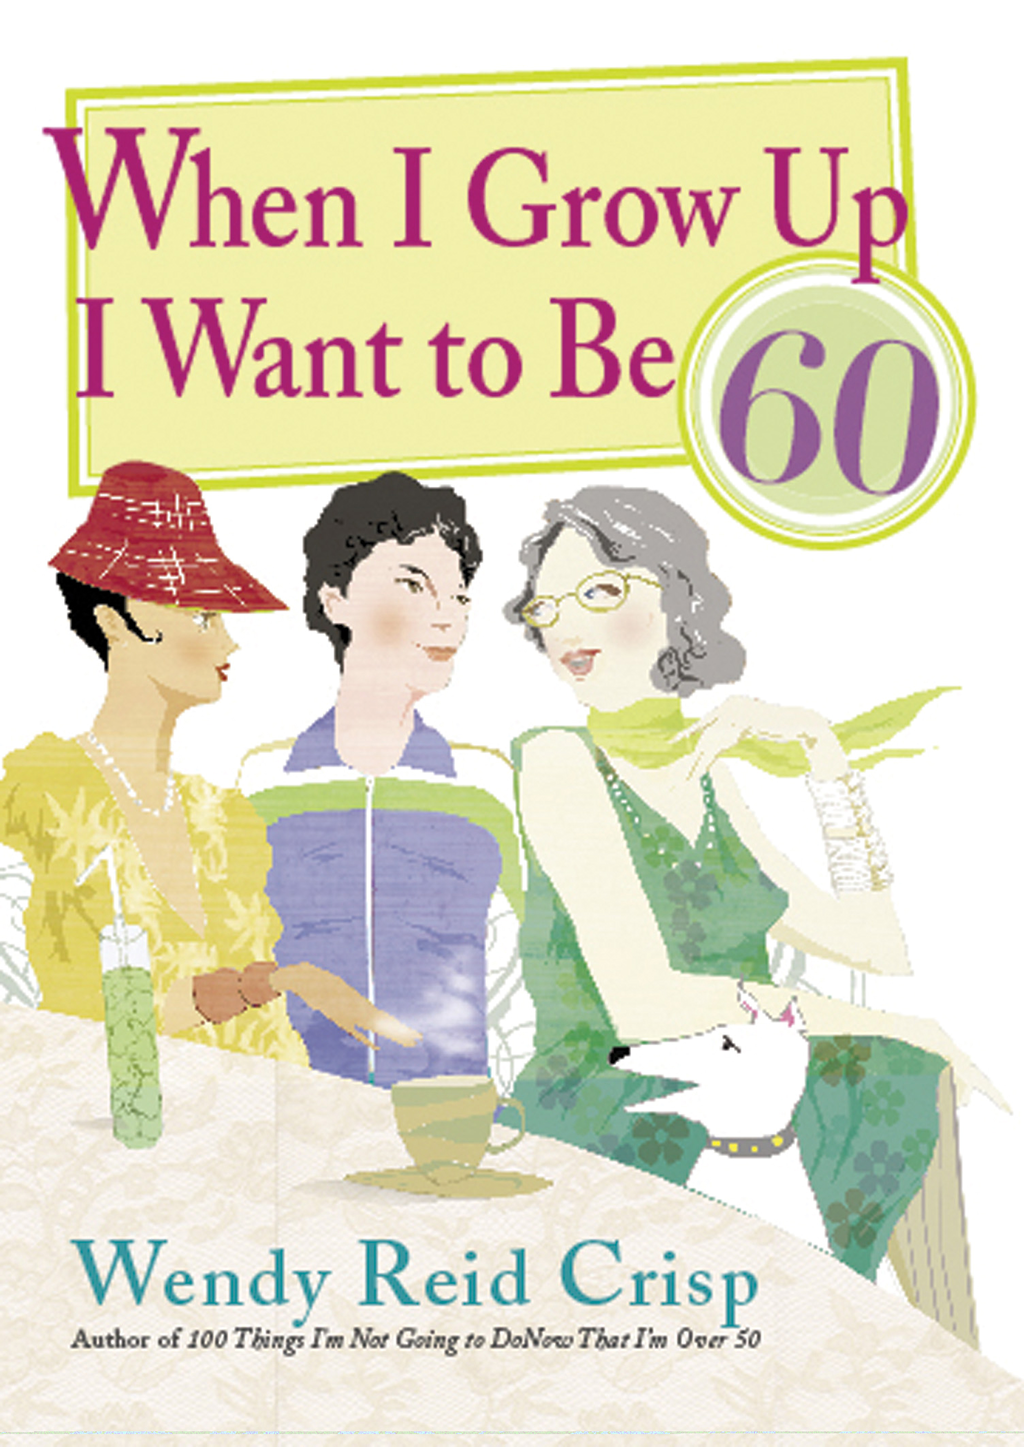 When I Grow Up I Want to Be 60 By: Wendy Crisp